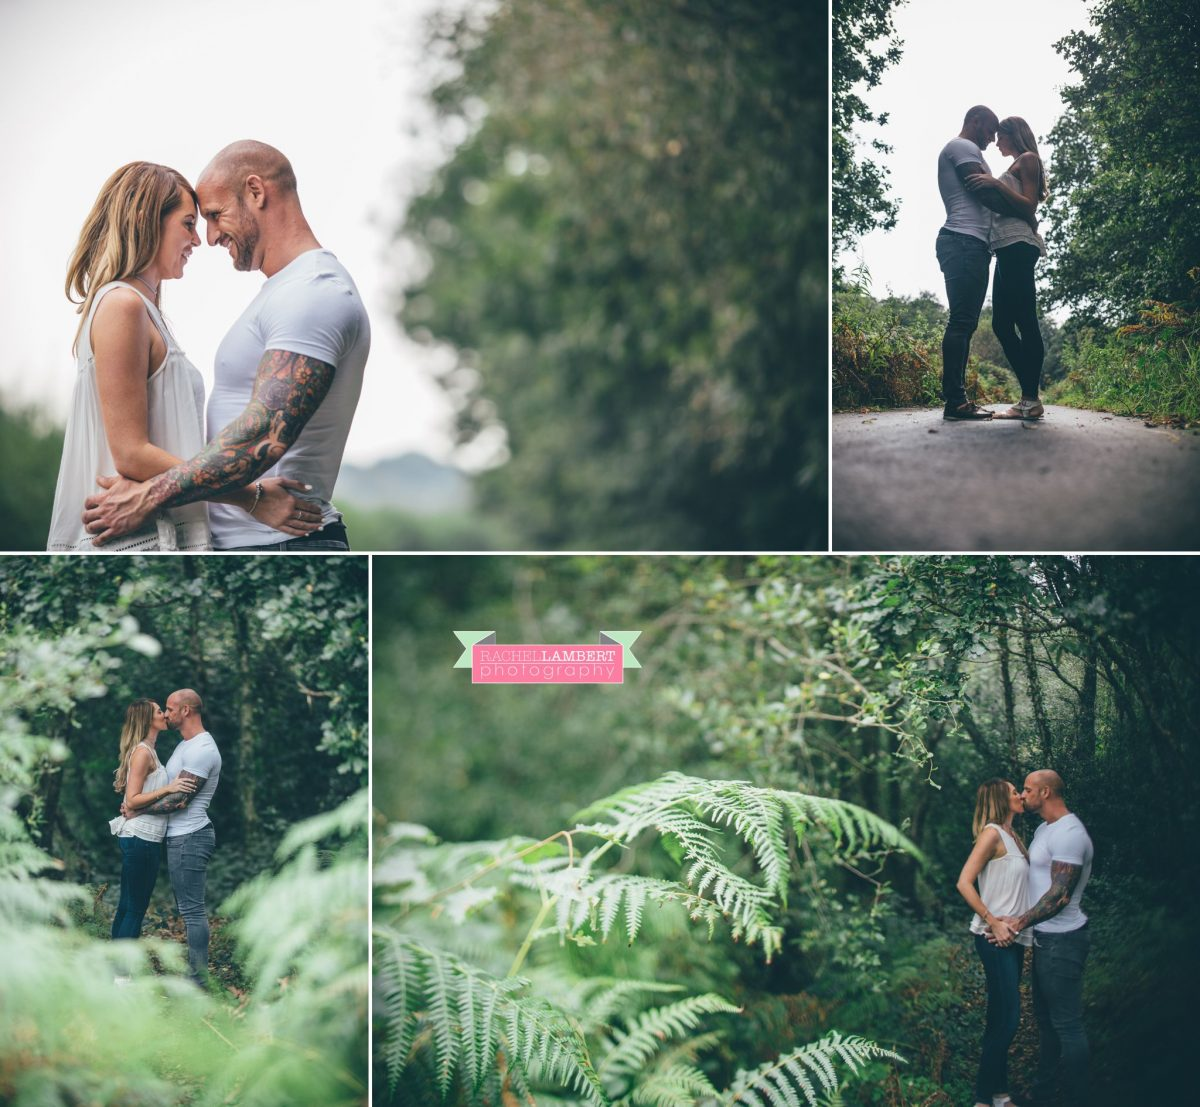 welsh_wedding_photographer_rachel_lambert_photography_cardiff_engagement_shoot_rhiannon_gavin_ 10